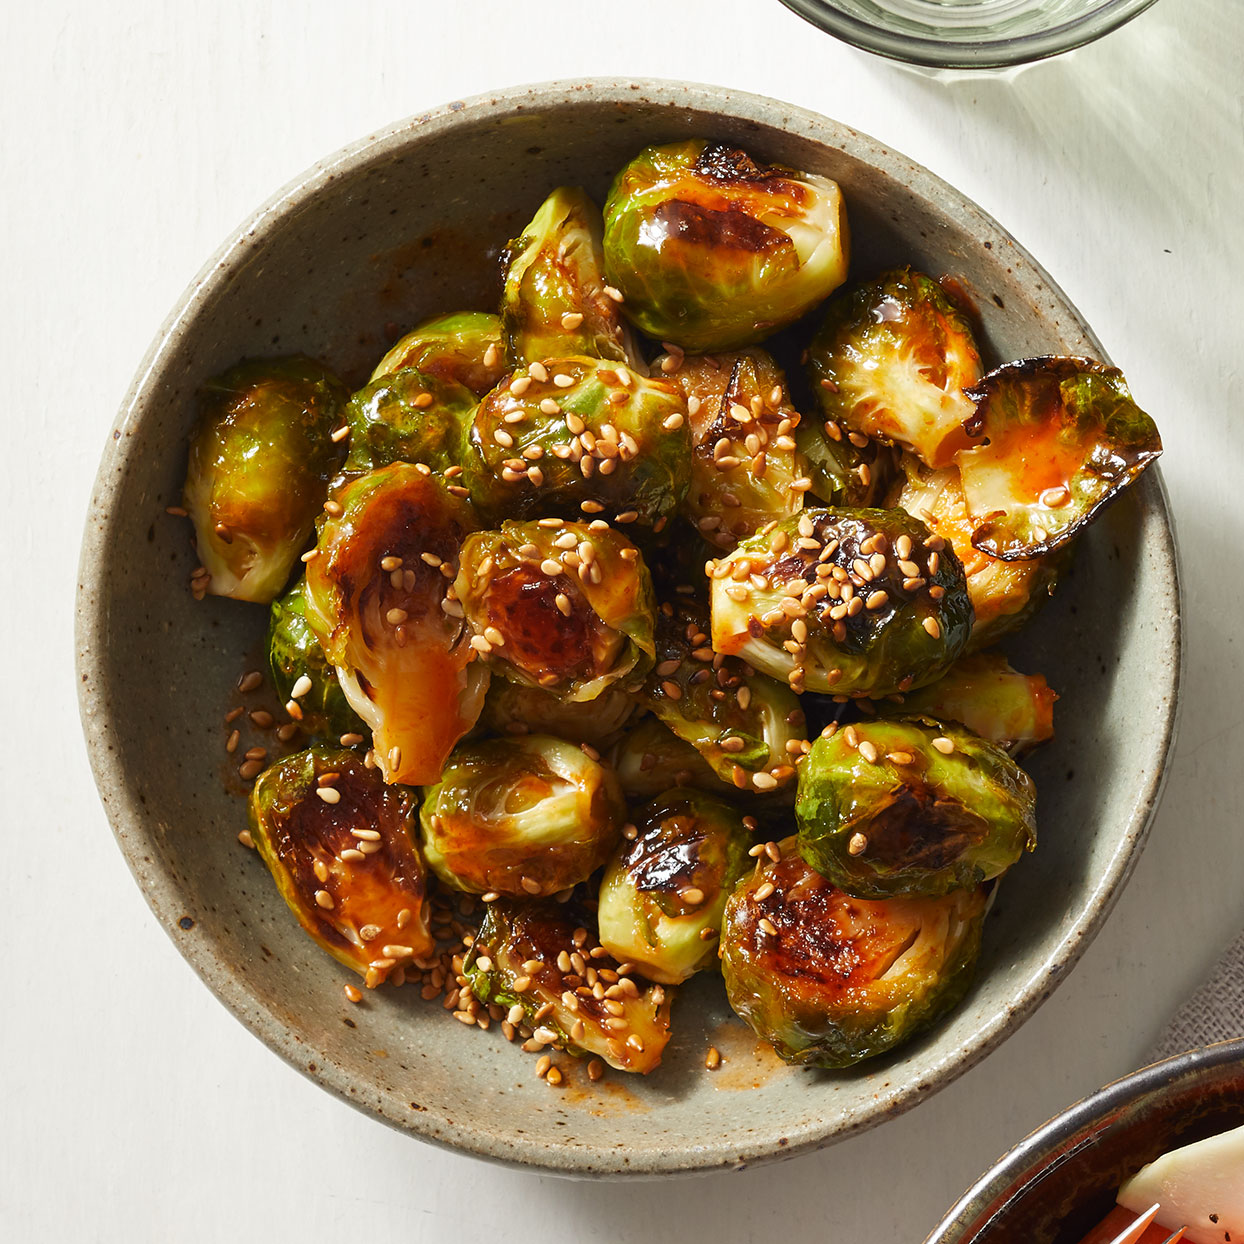 Honey-Chile Glazed Baked Brussels Sprouts